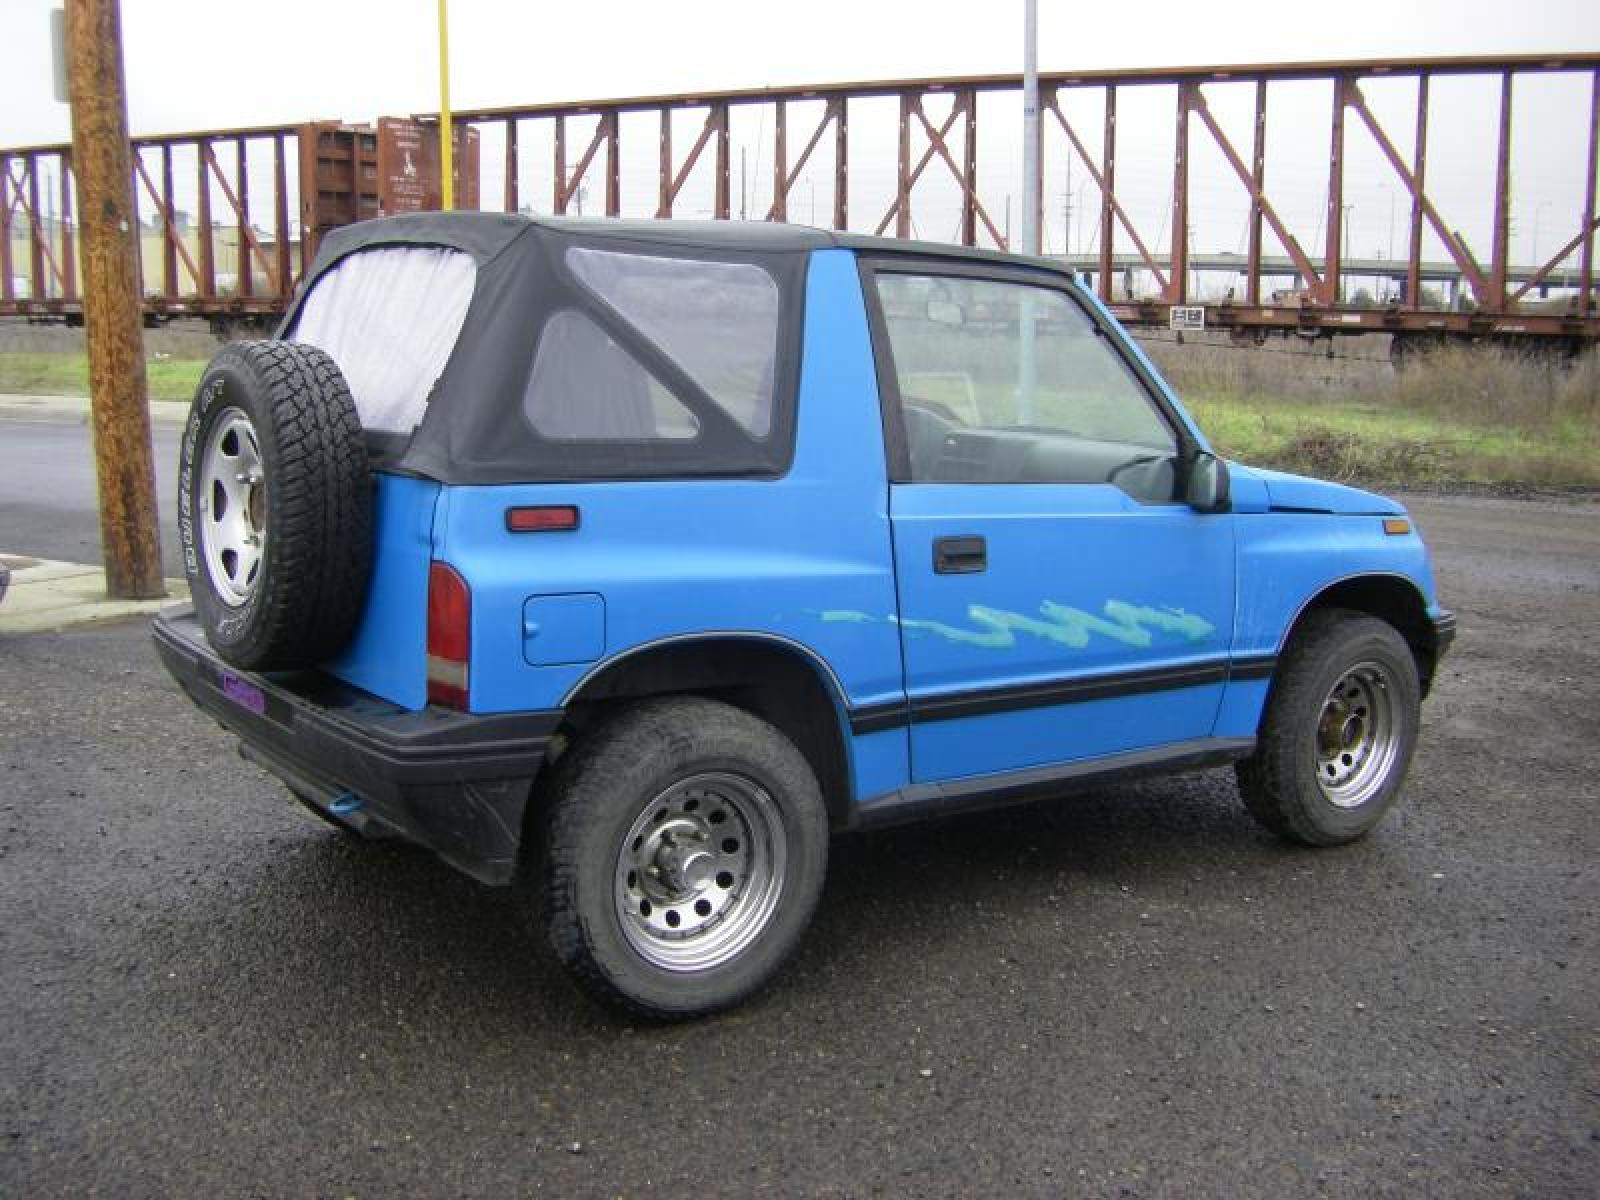 1992 geo tracker information and photos zombiedrive. Black Bedroom Furniture Sets. Home Design Ideas